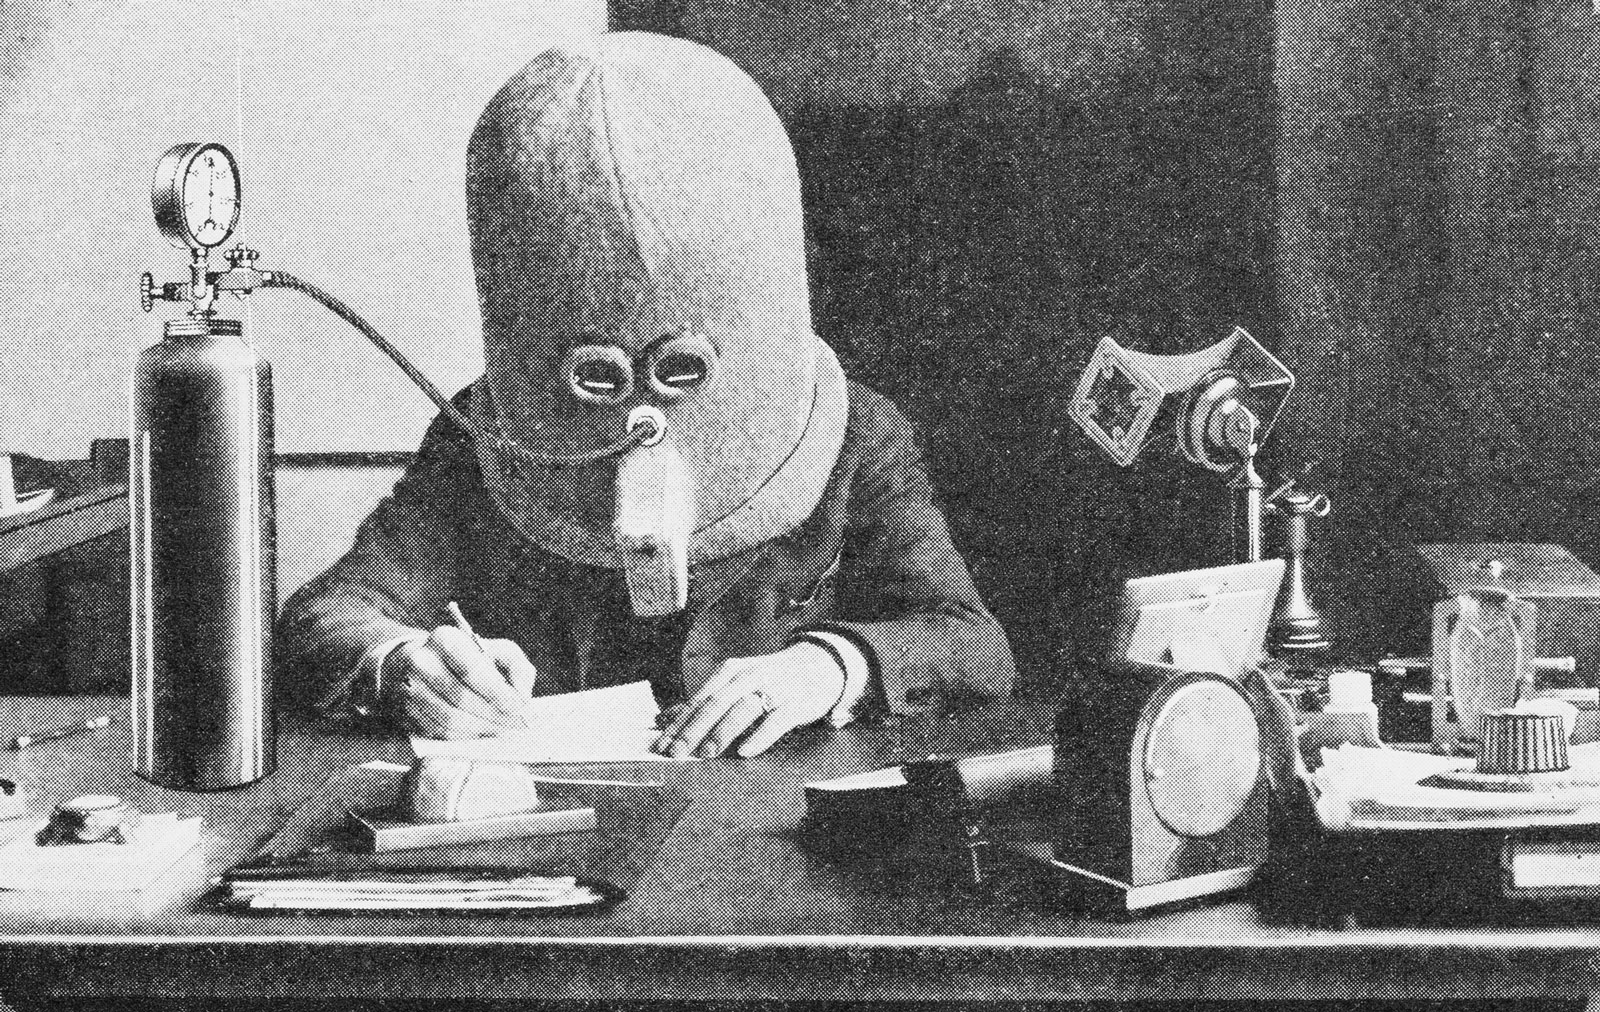 Illustration: Hugo Gernsback wearing his Isolator, which eliminates external noises for concentration, in Science and Invention, juillet 1925. Syracuse University Libraries, Special Collections Research Center.